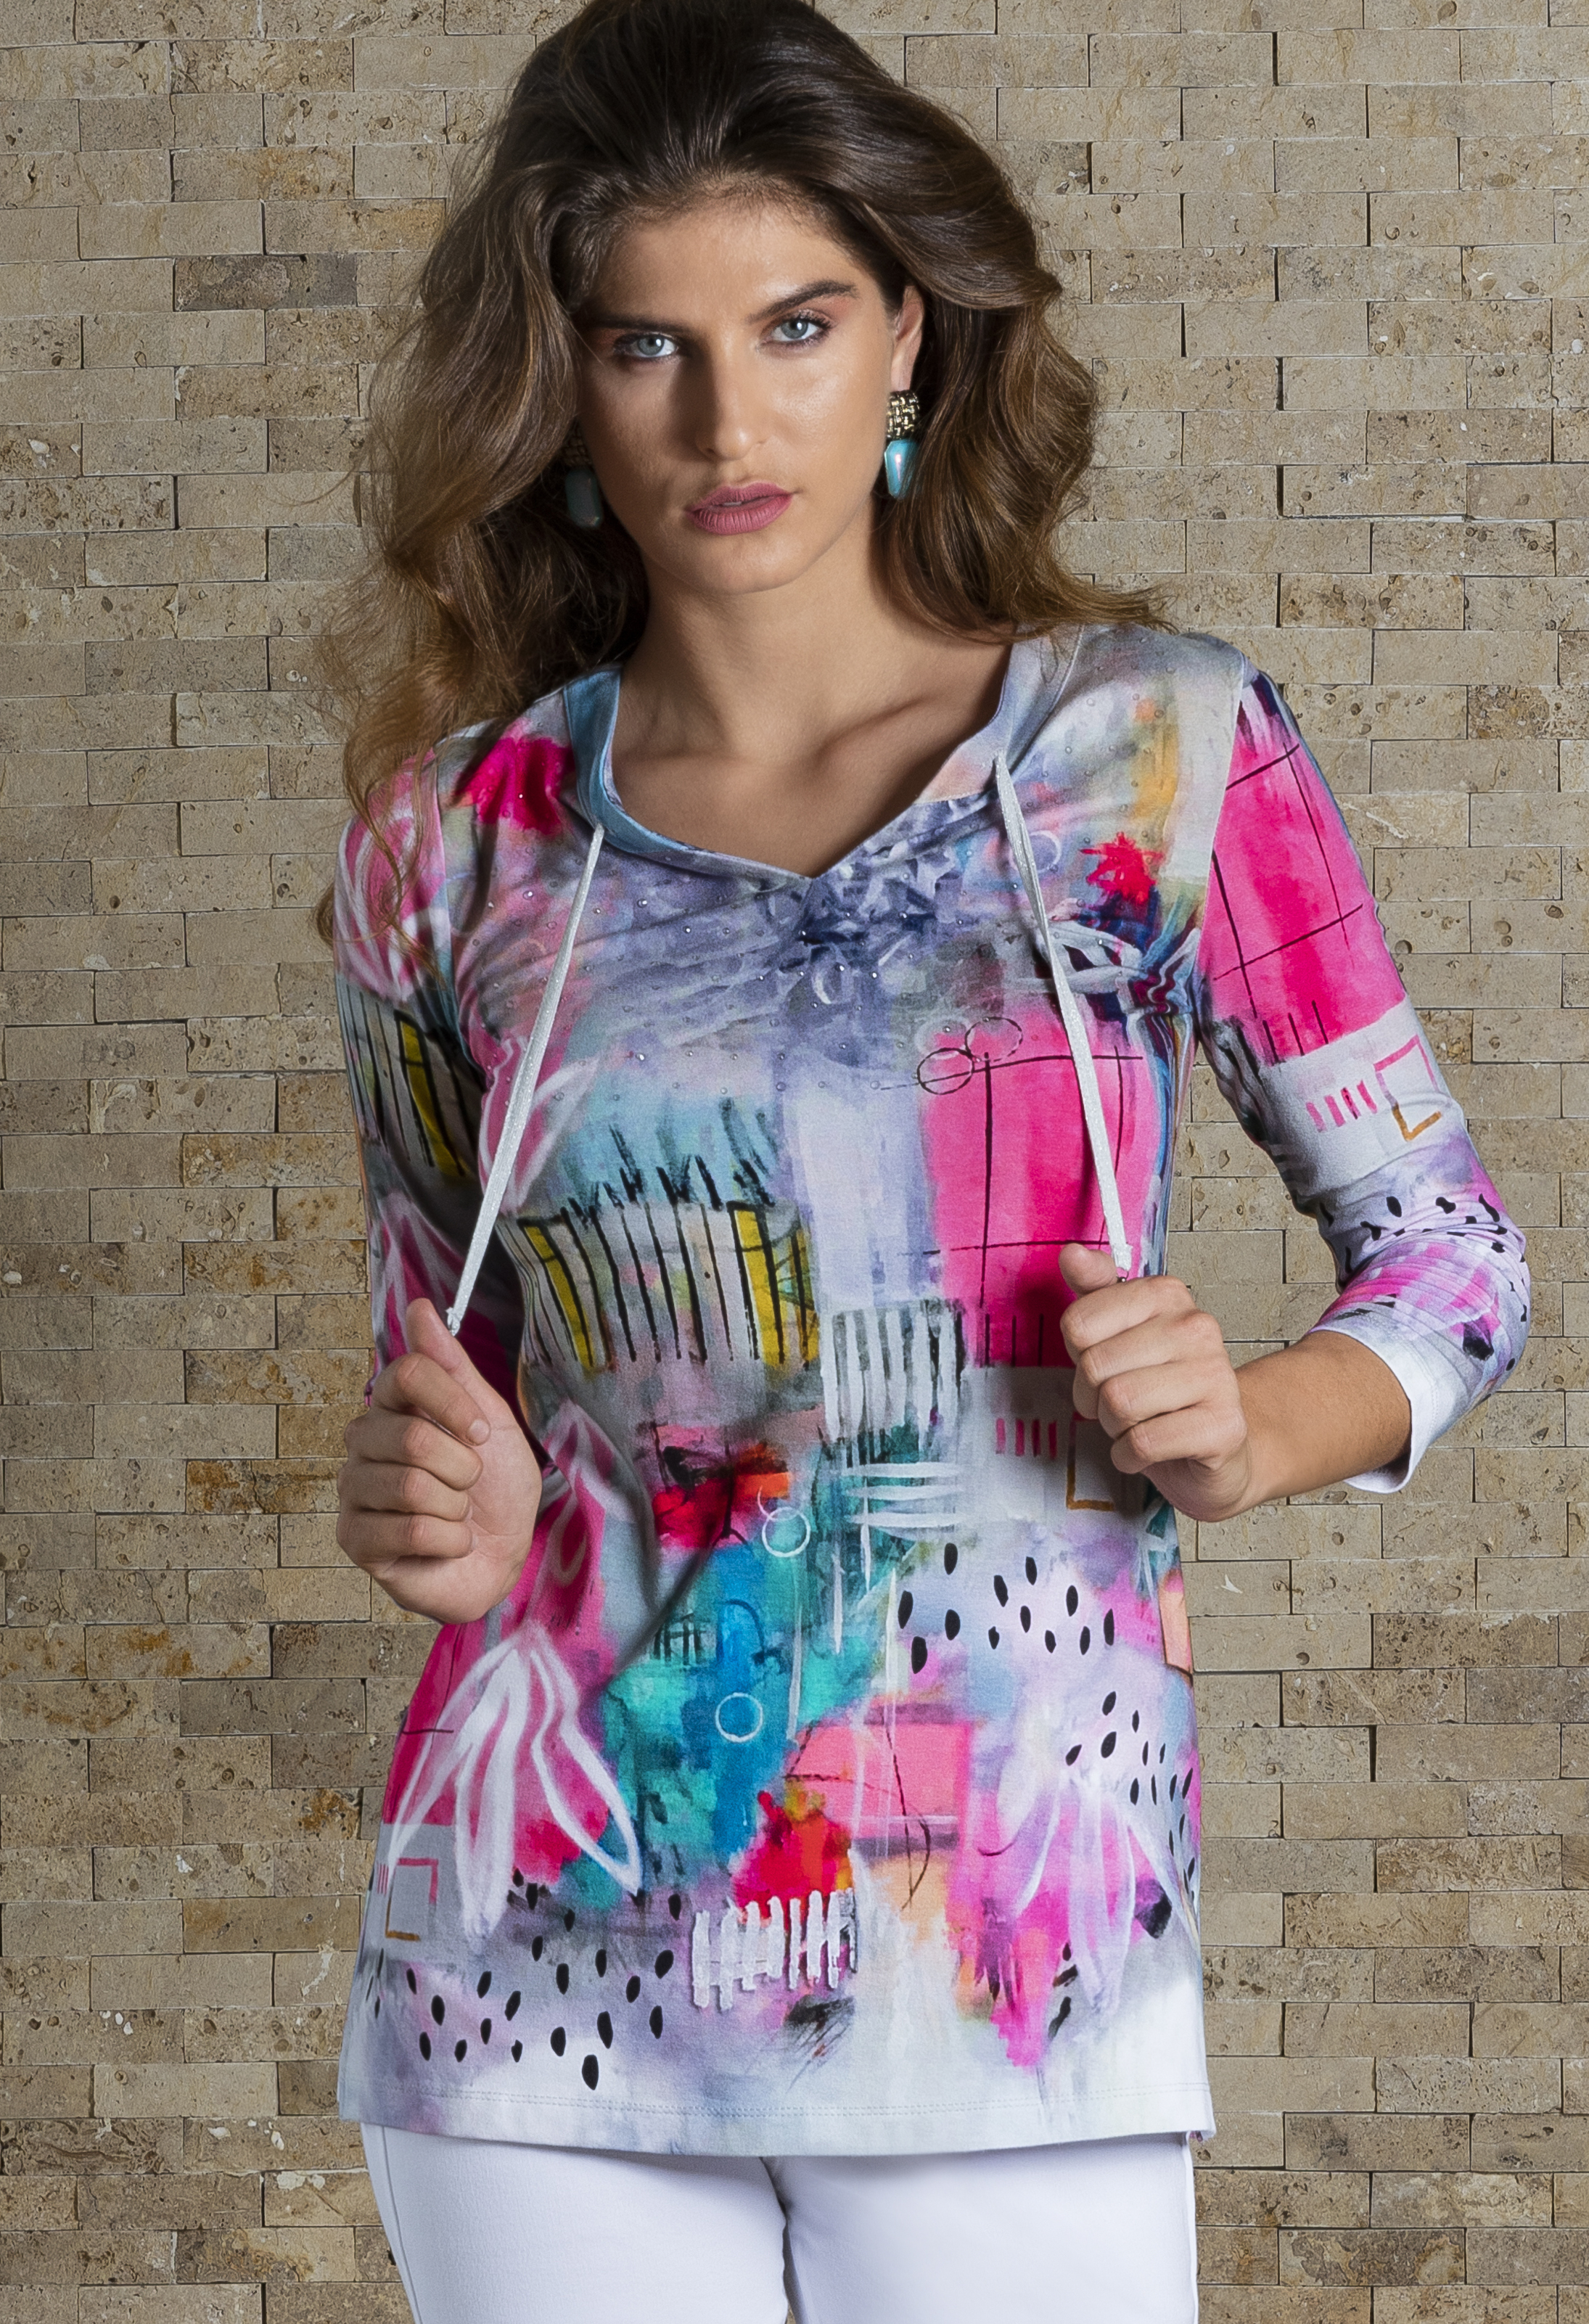 Simply Art Dolcezza: Receive The Best Things In Life Abstract Art Tunic DOLCEZZA_SIMPLYART_20670